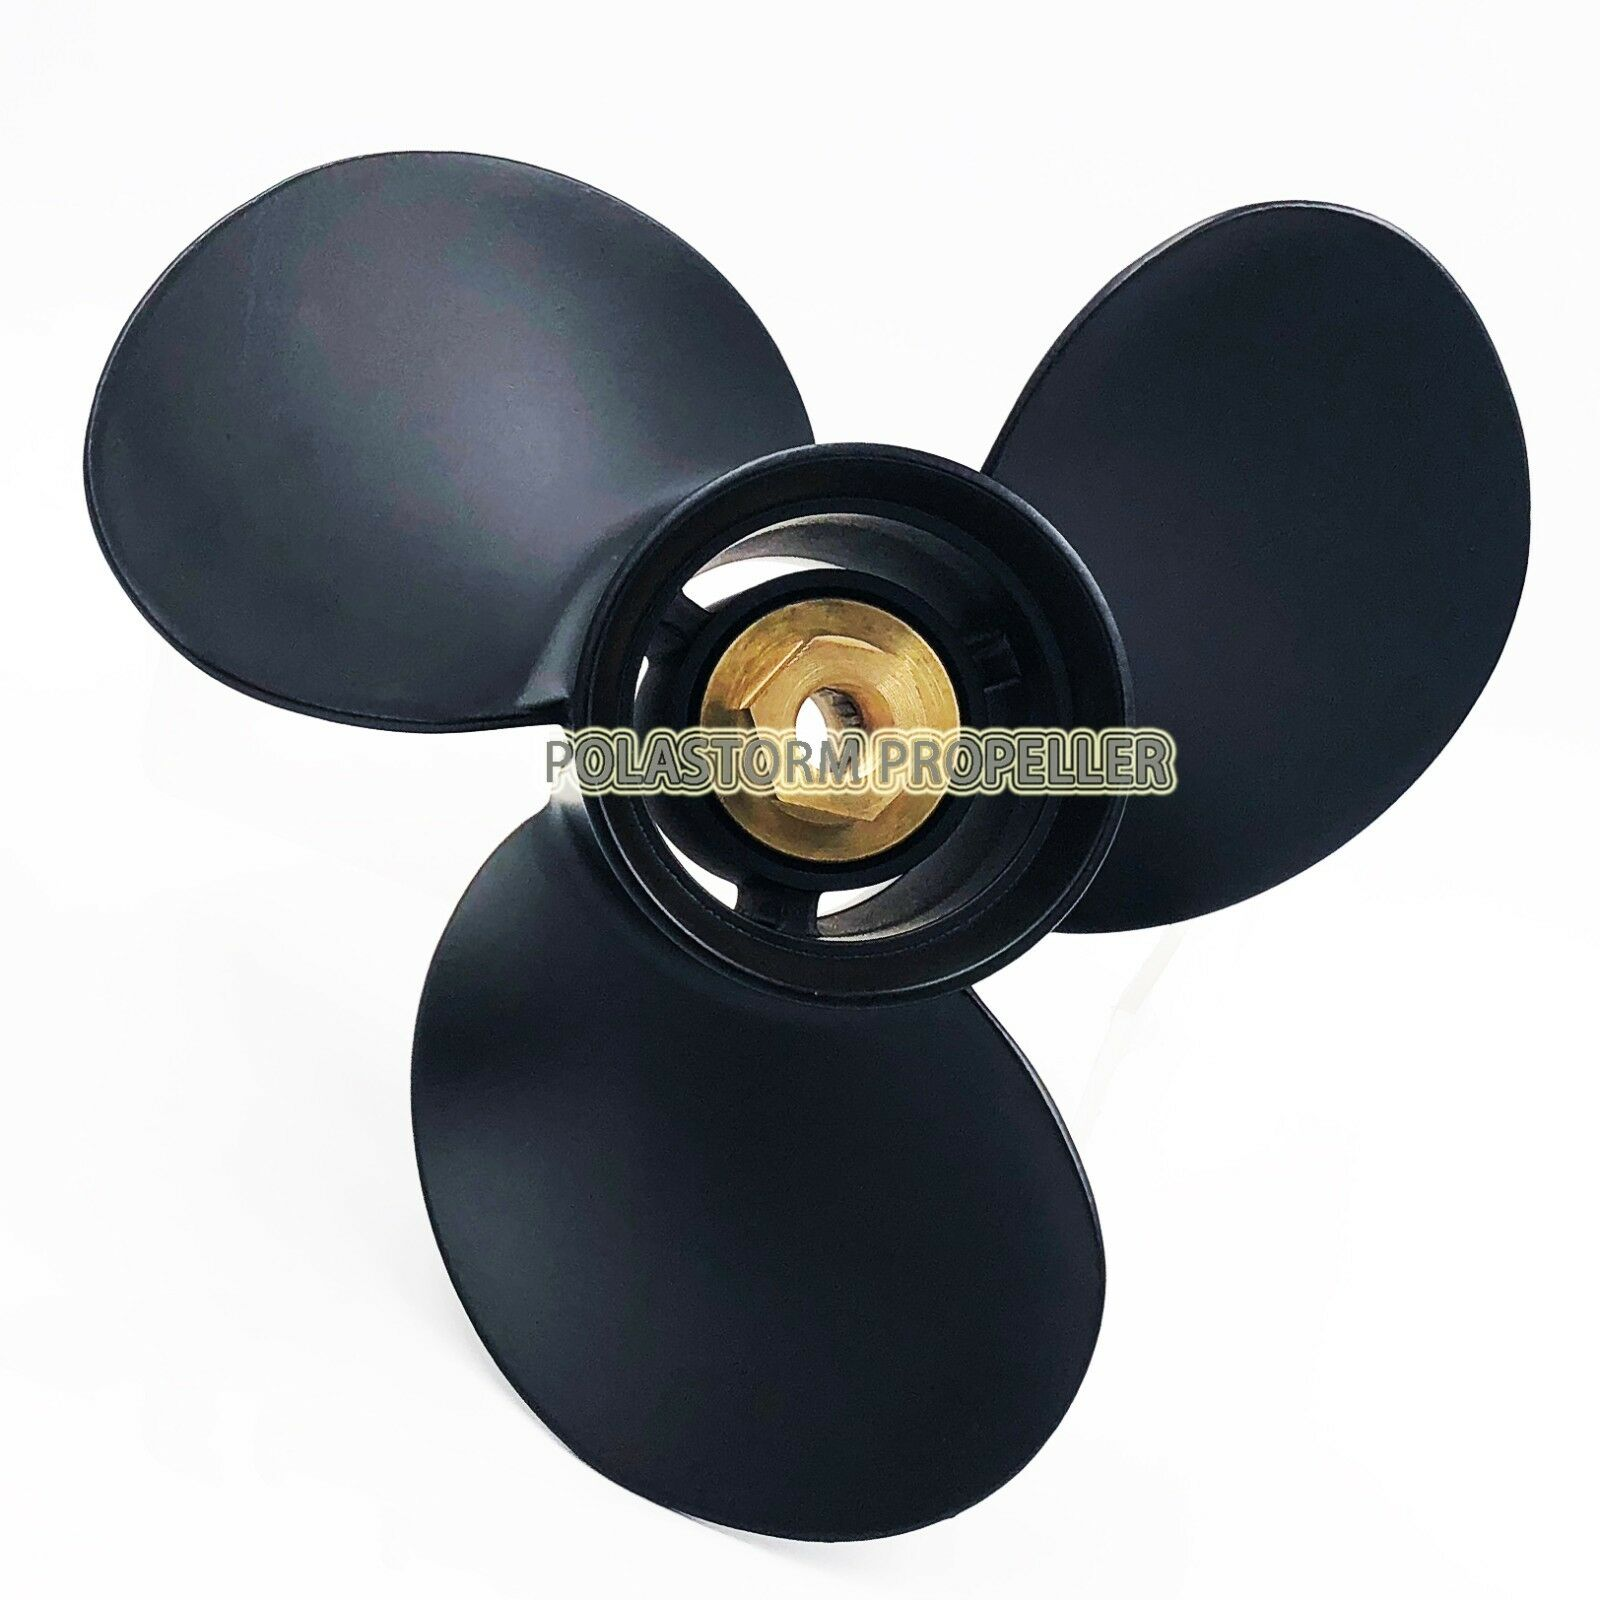 9.9X12 P Aluminum Outboard Propeller For Mercury 25-30HP   .